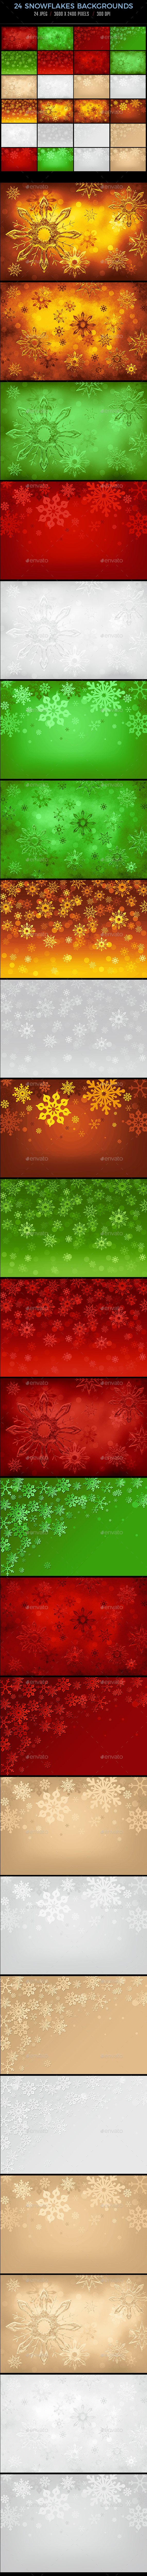 24 Snowflakes Backgrounds - Backgrounds Graphics